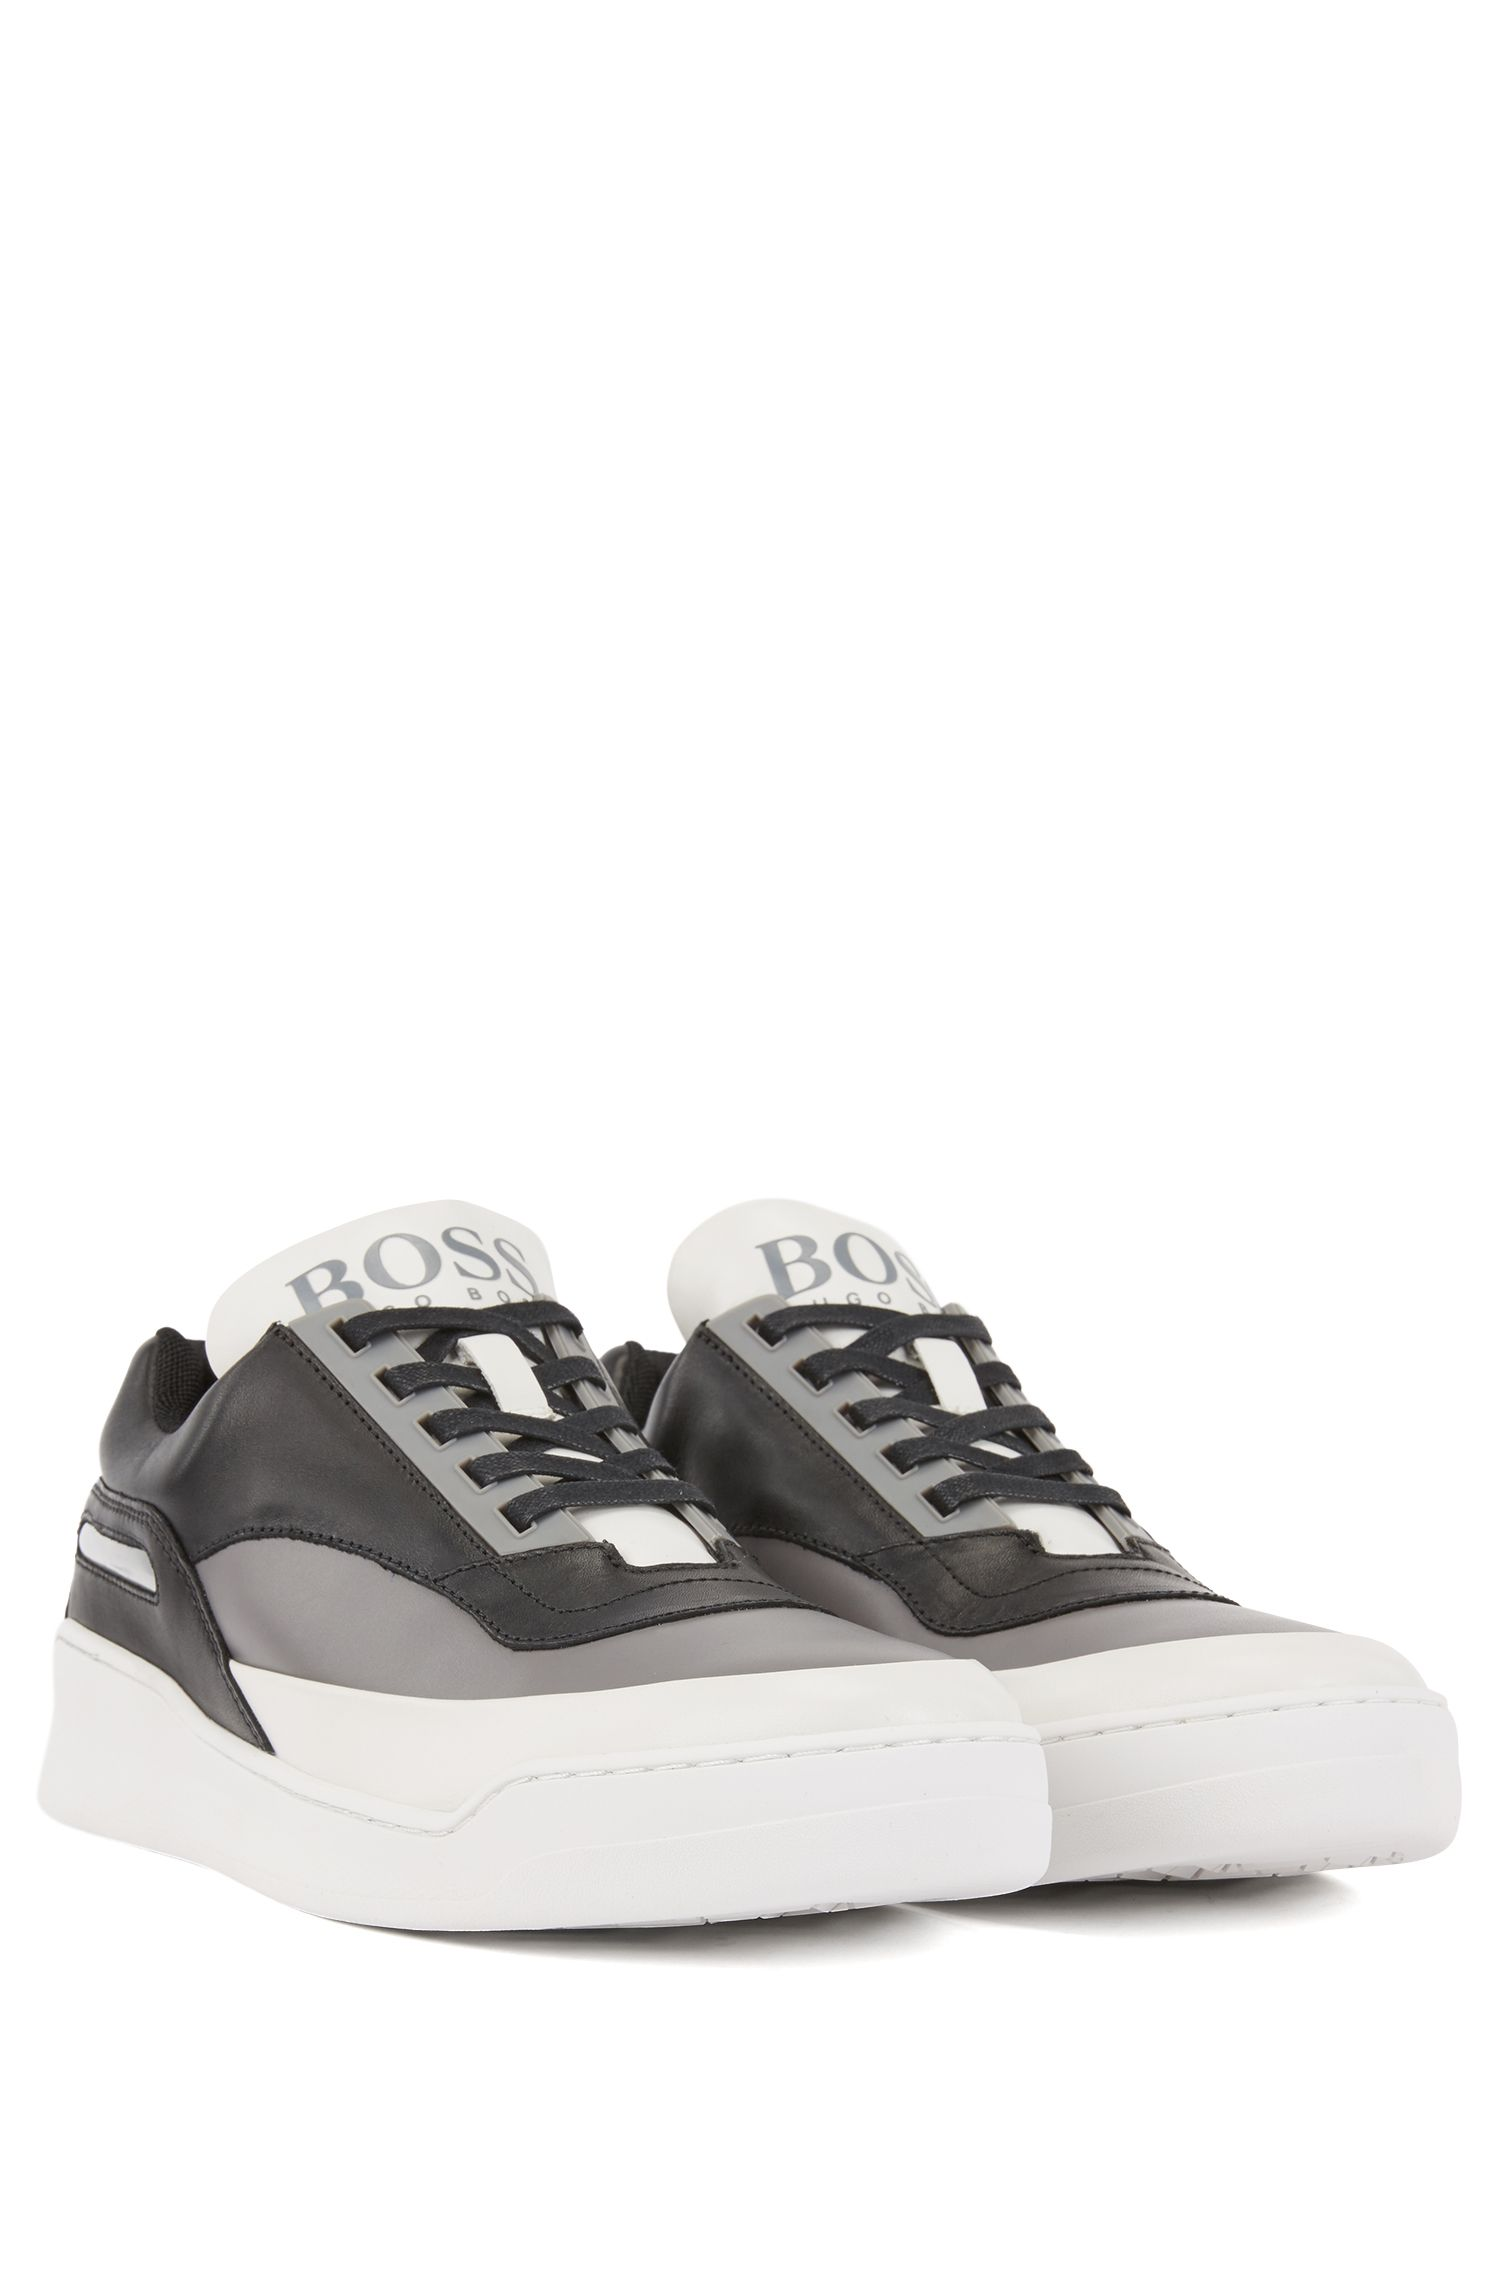 Leather trainers with reflective window and rubber sole, Grey